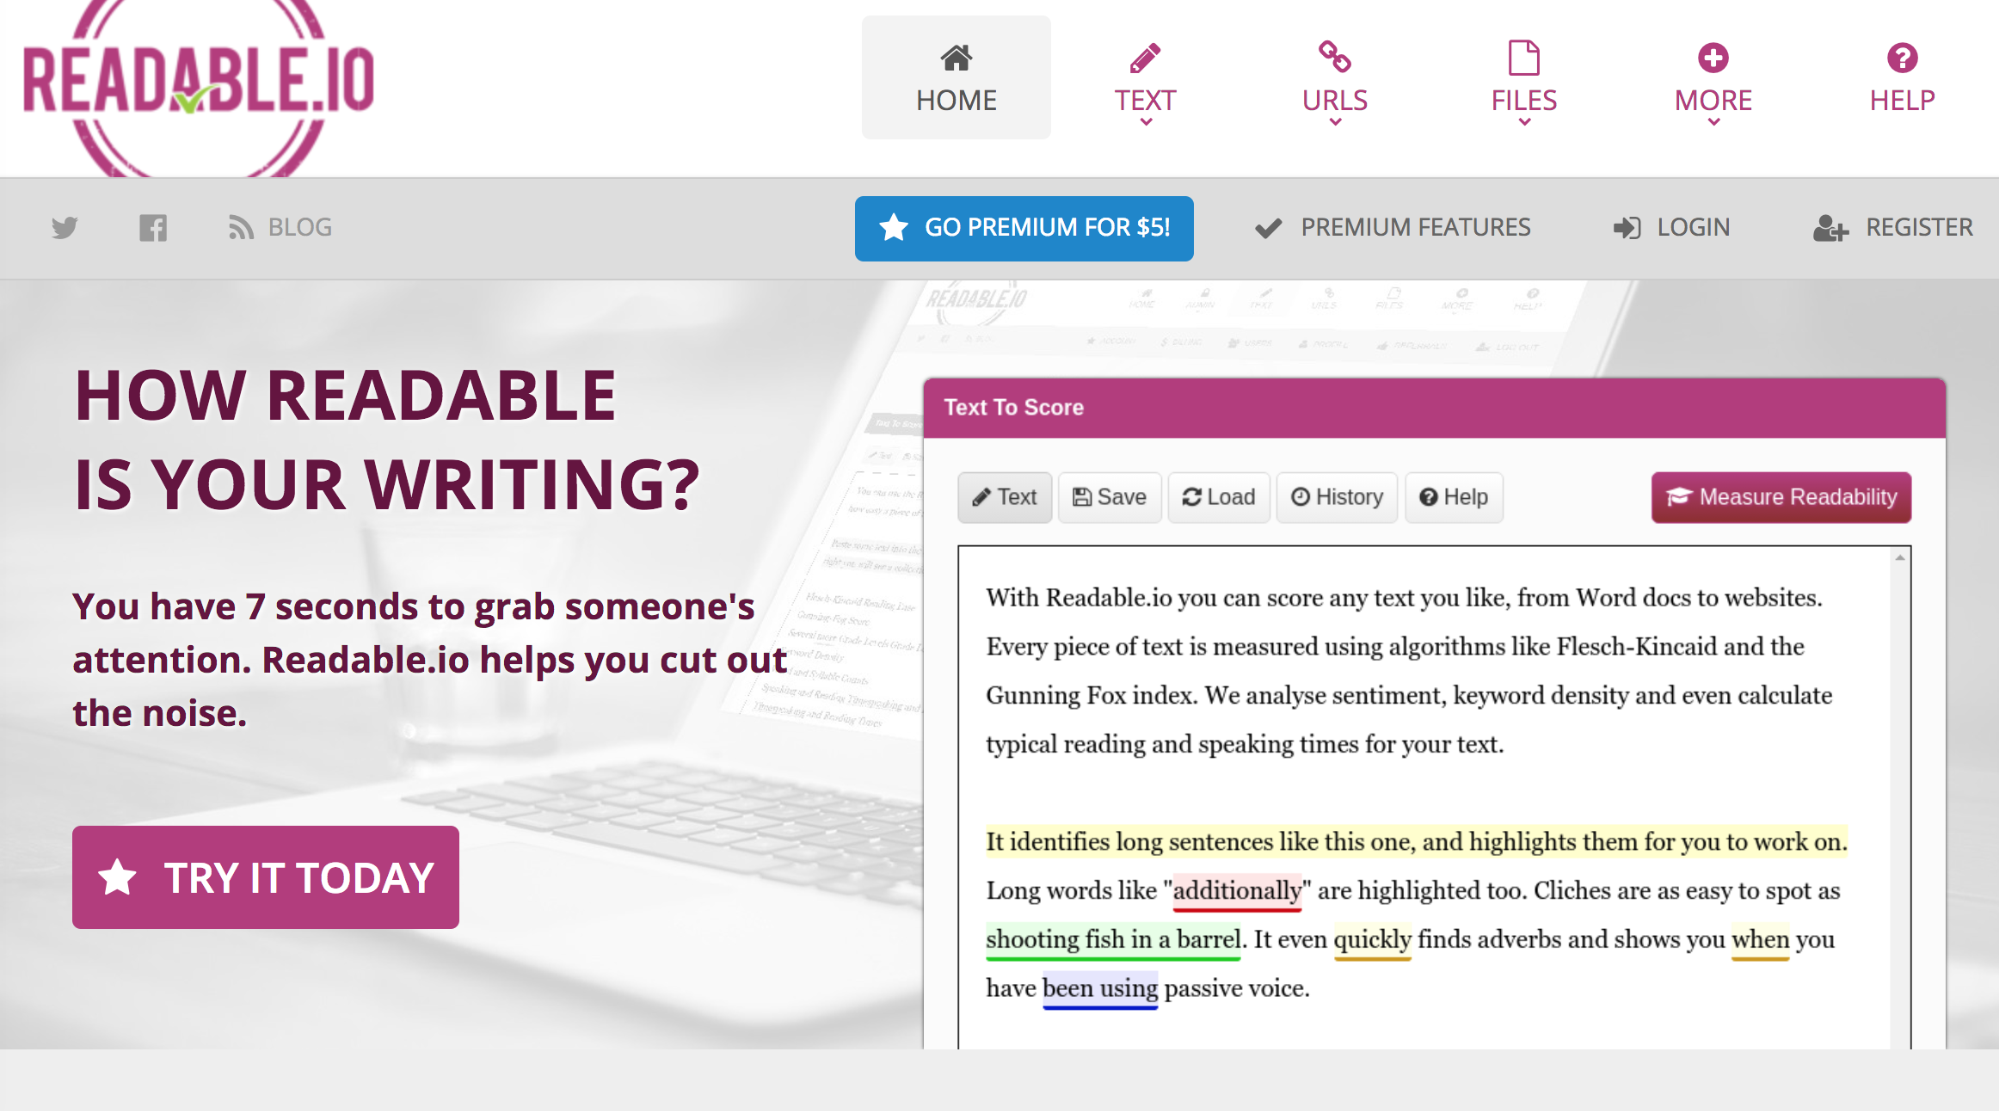 one of the best content writing tips is to have readable text- using readable.io